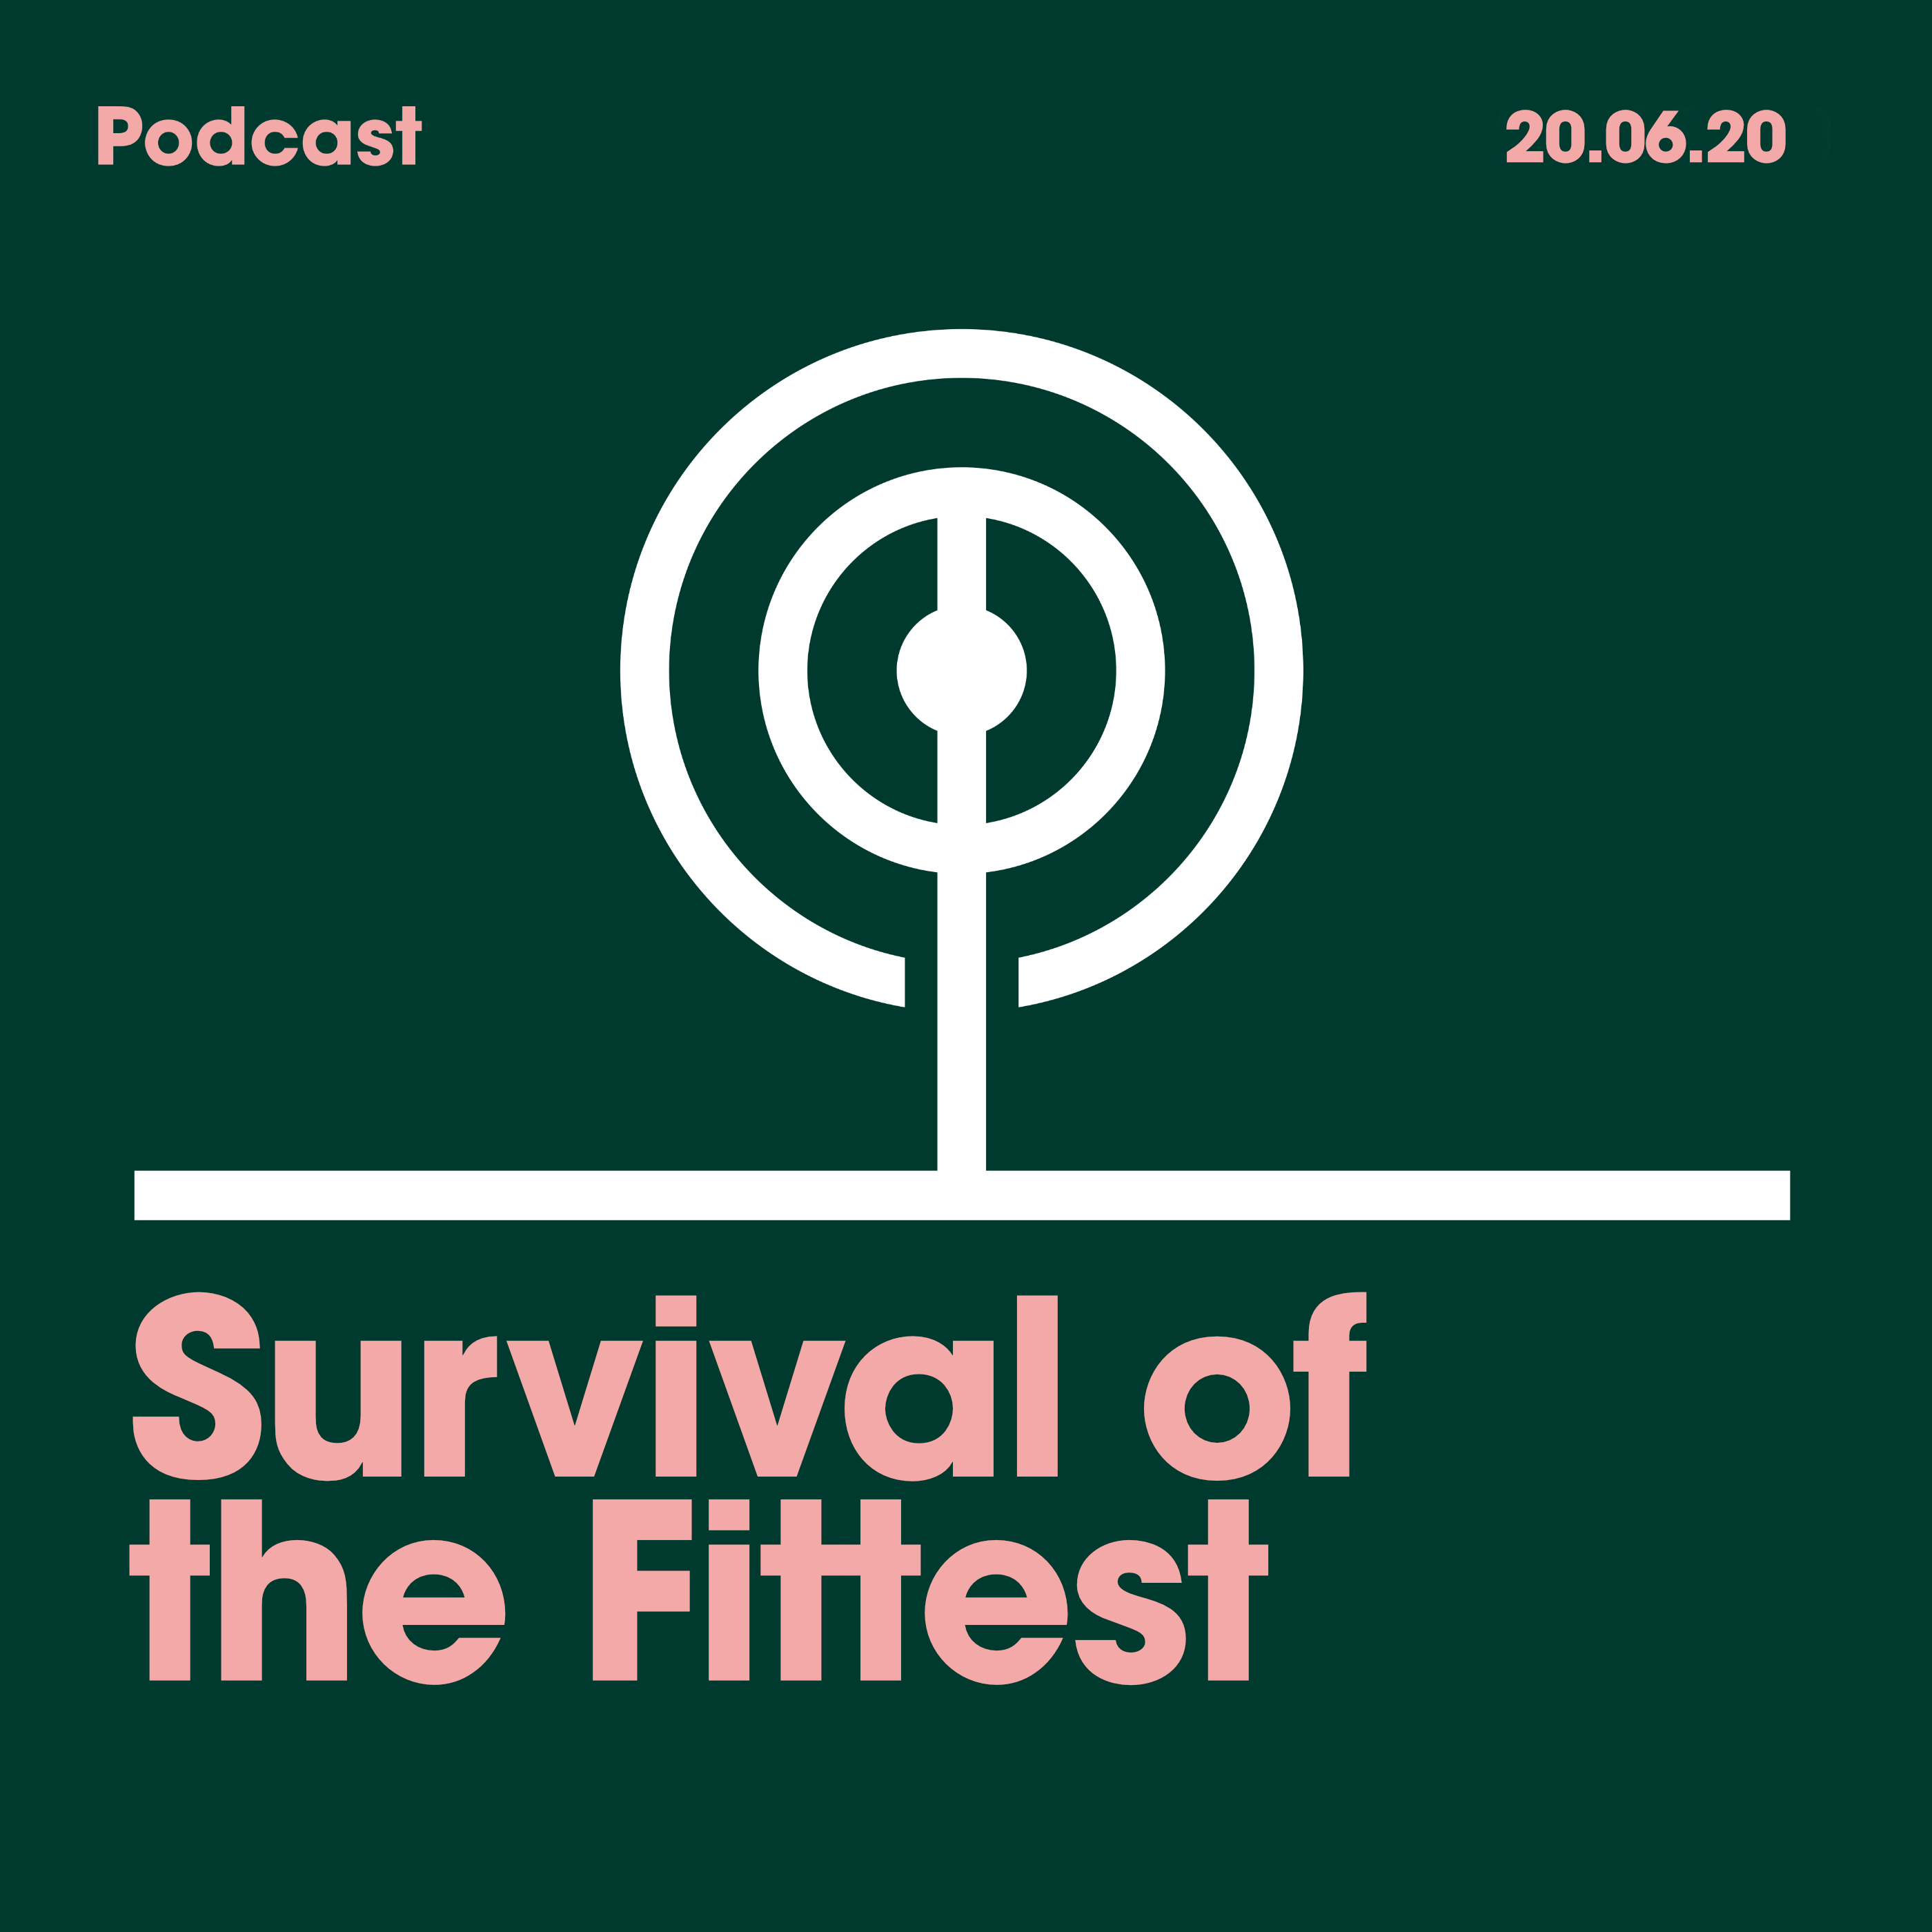 20.06.20. Survival of the Fittest